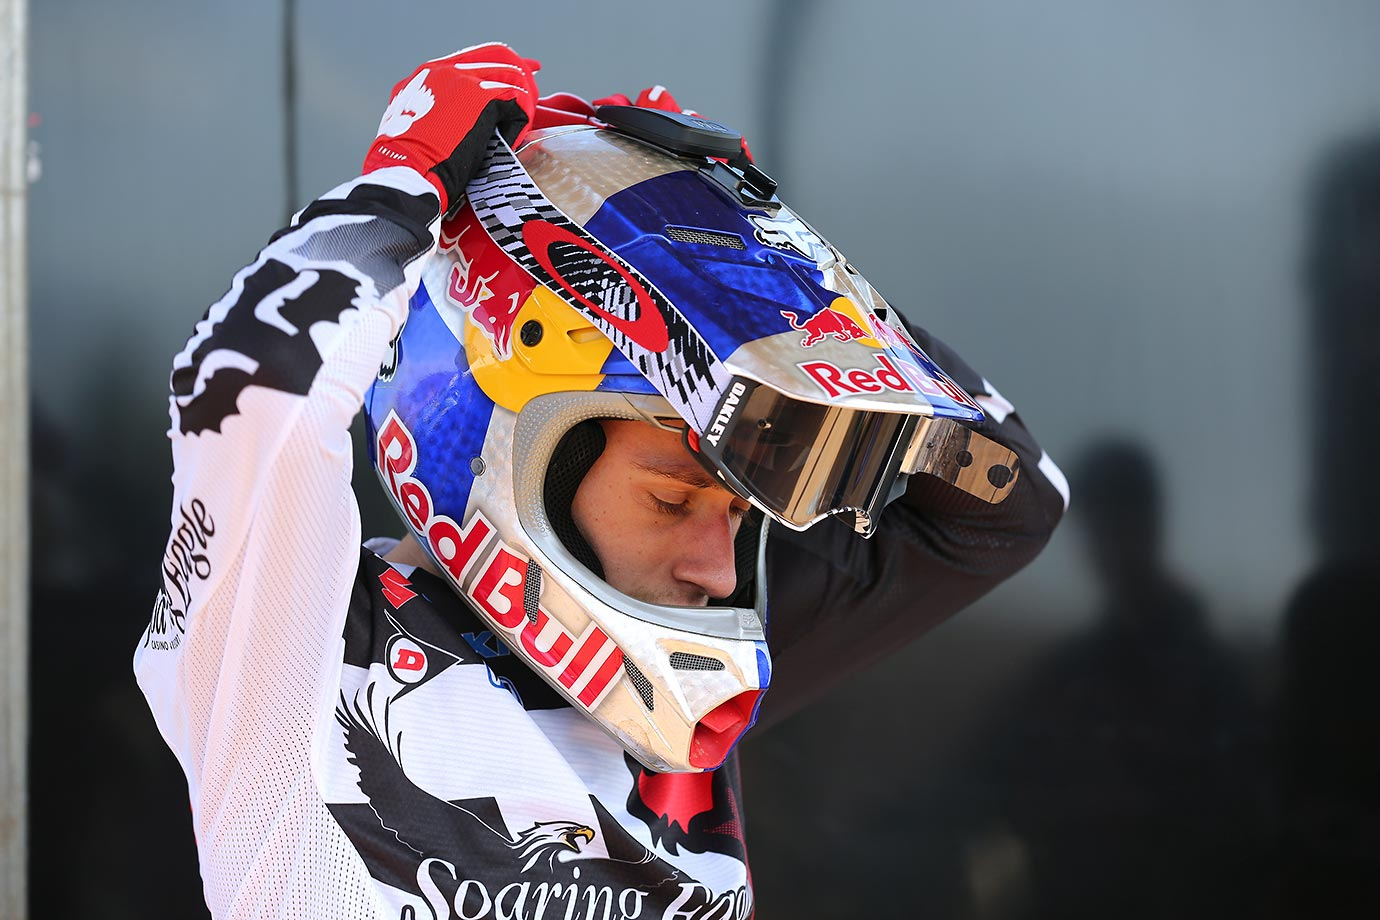 Ken Roczen straps his helmet on before heading out to the track for practice.